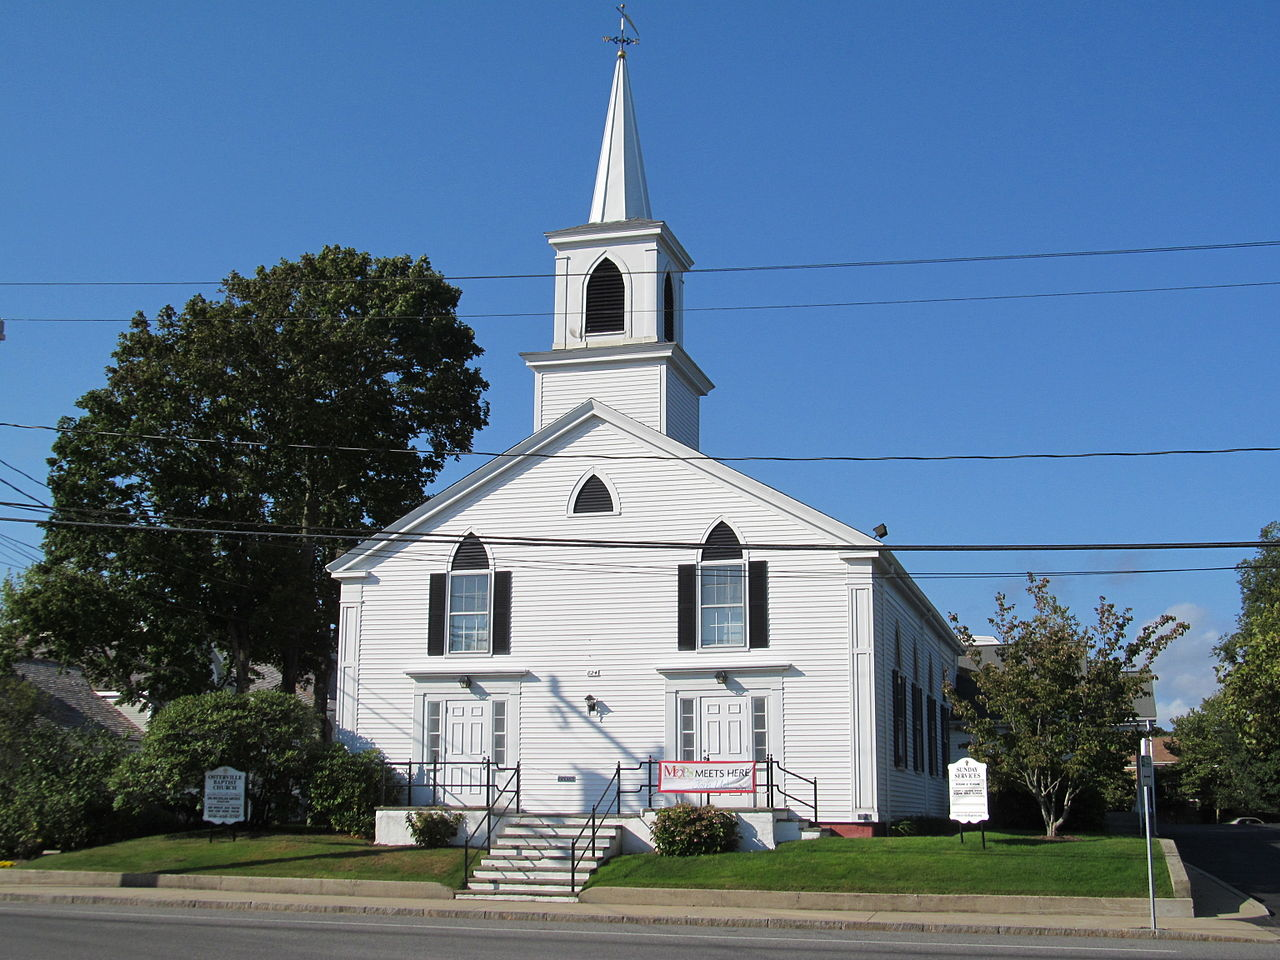 Church Buildings For Sale In Clarksville Tn